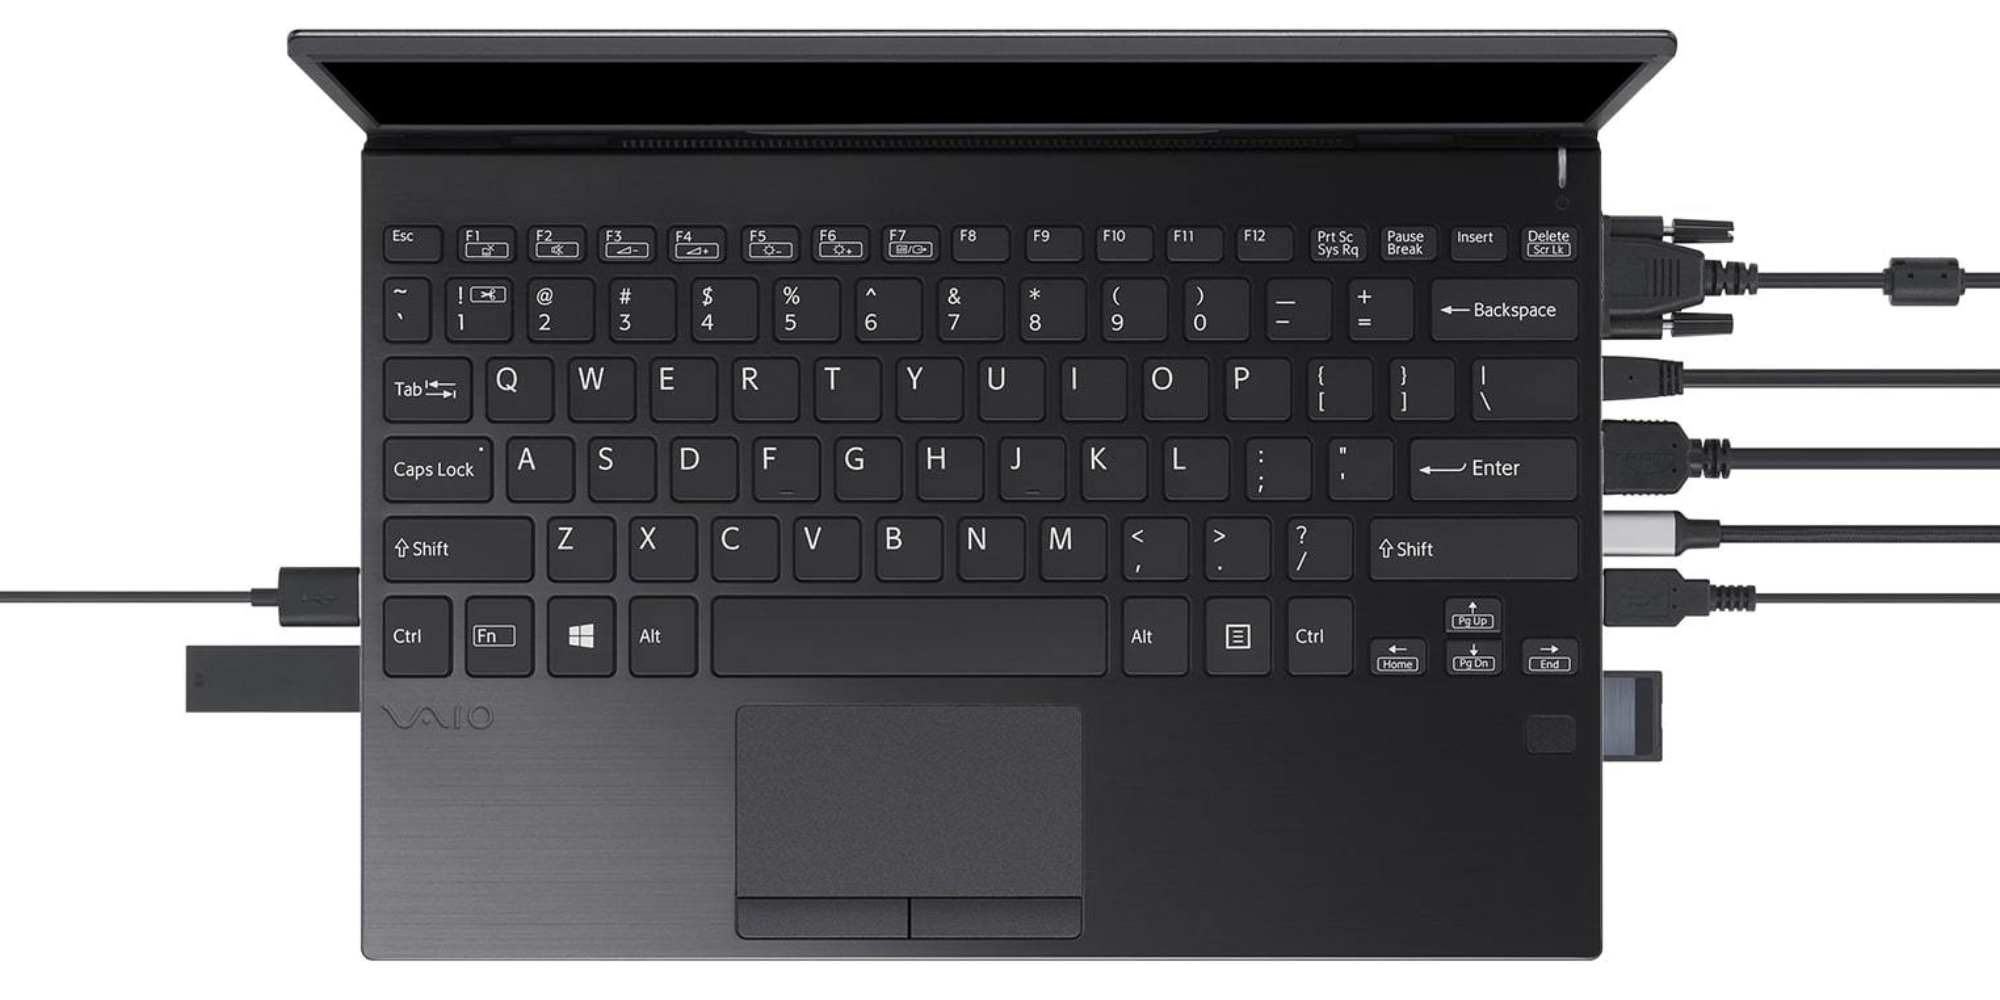 New VAIO SX12 trounces MacBook weight and port selection - 9to5Toys